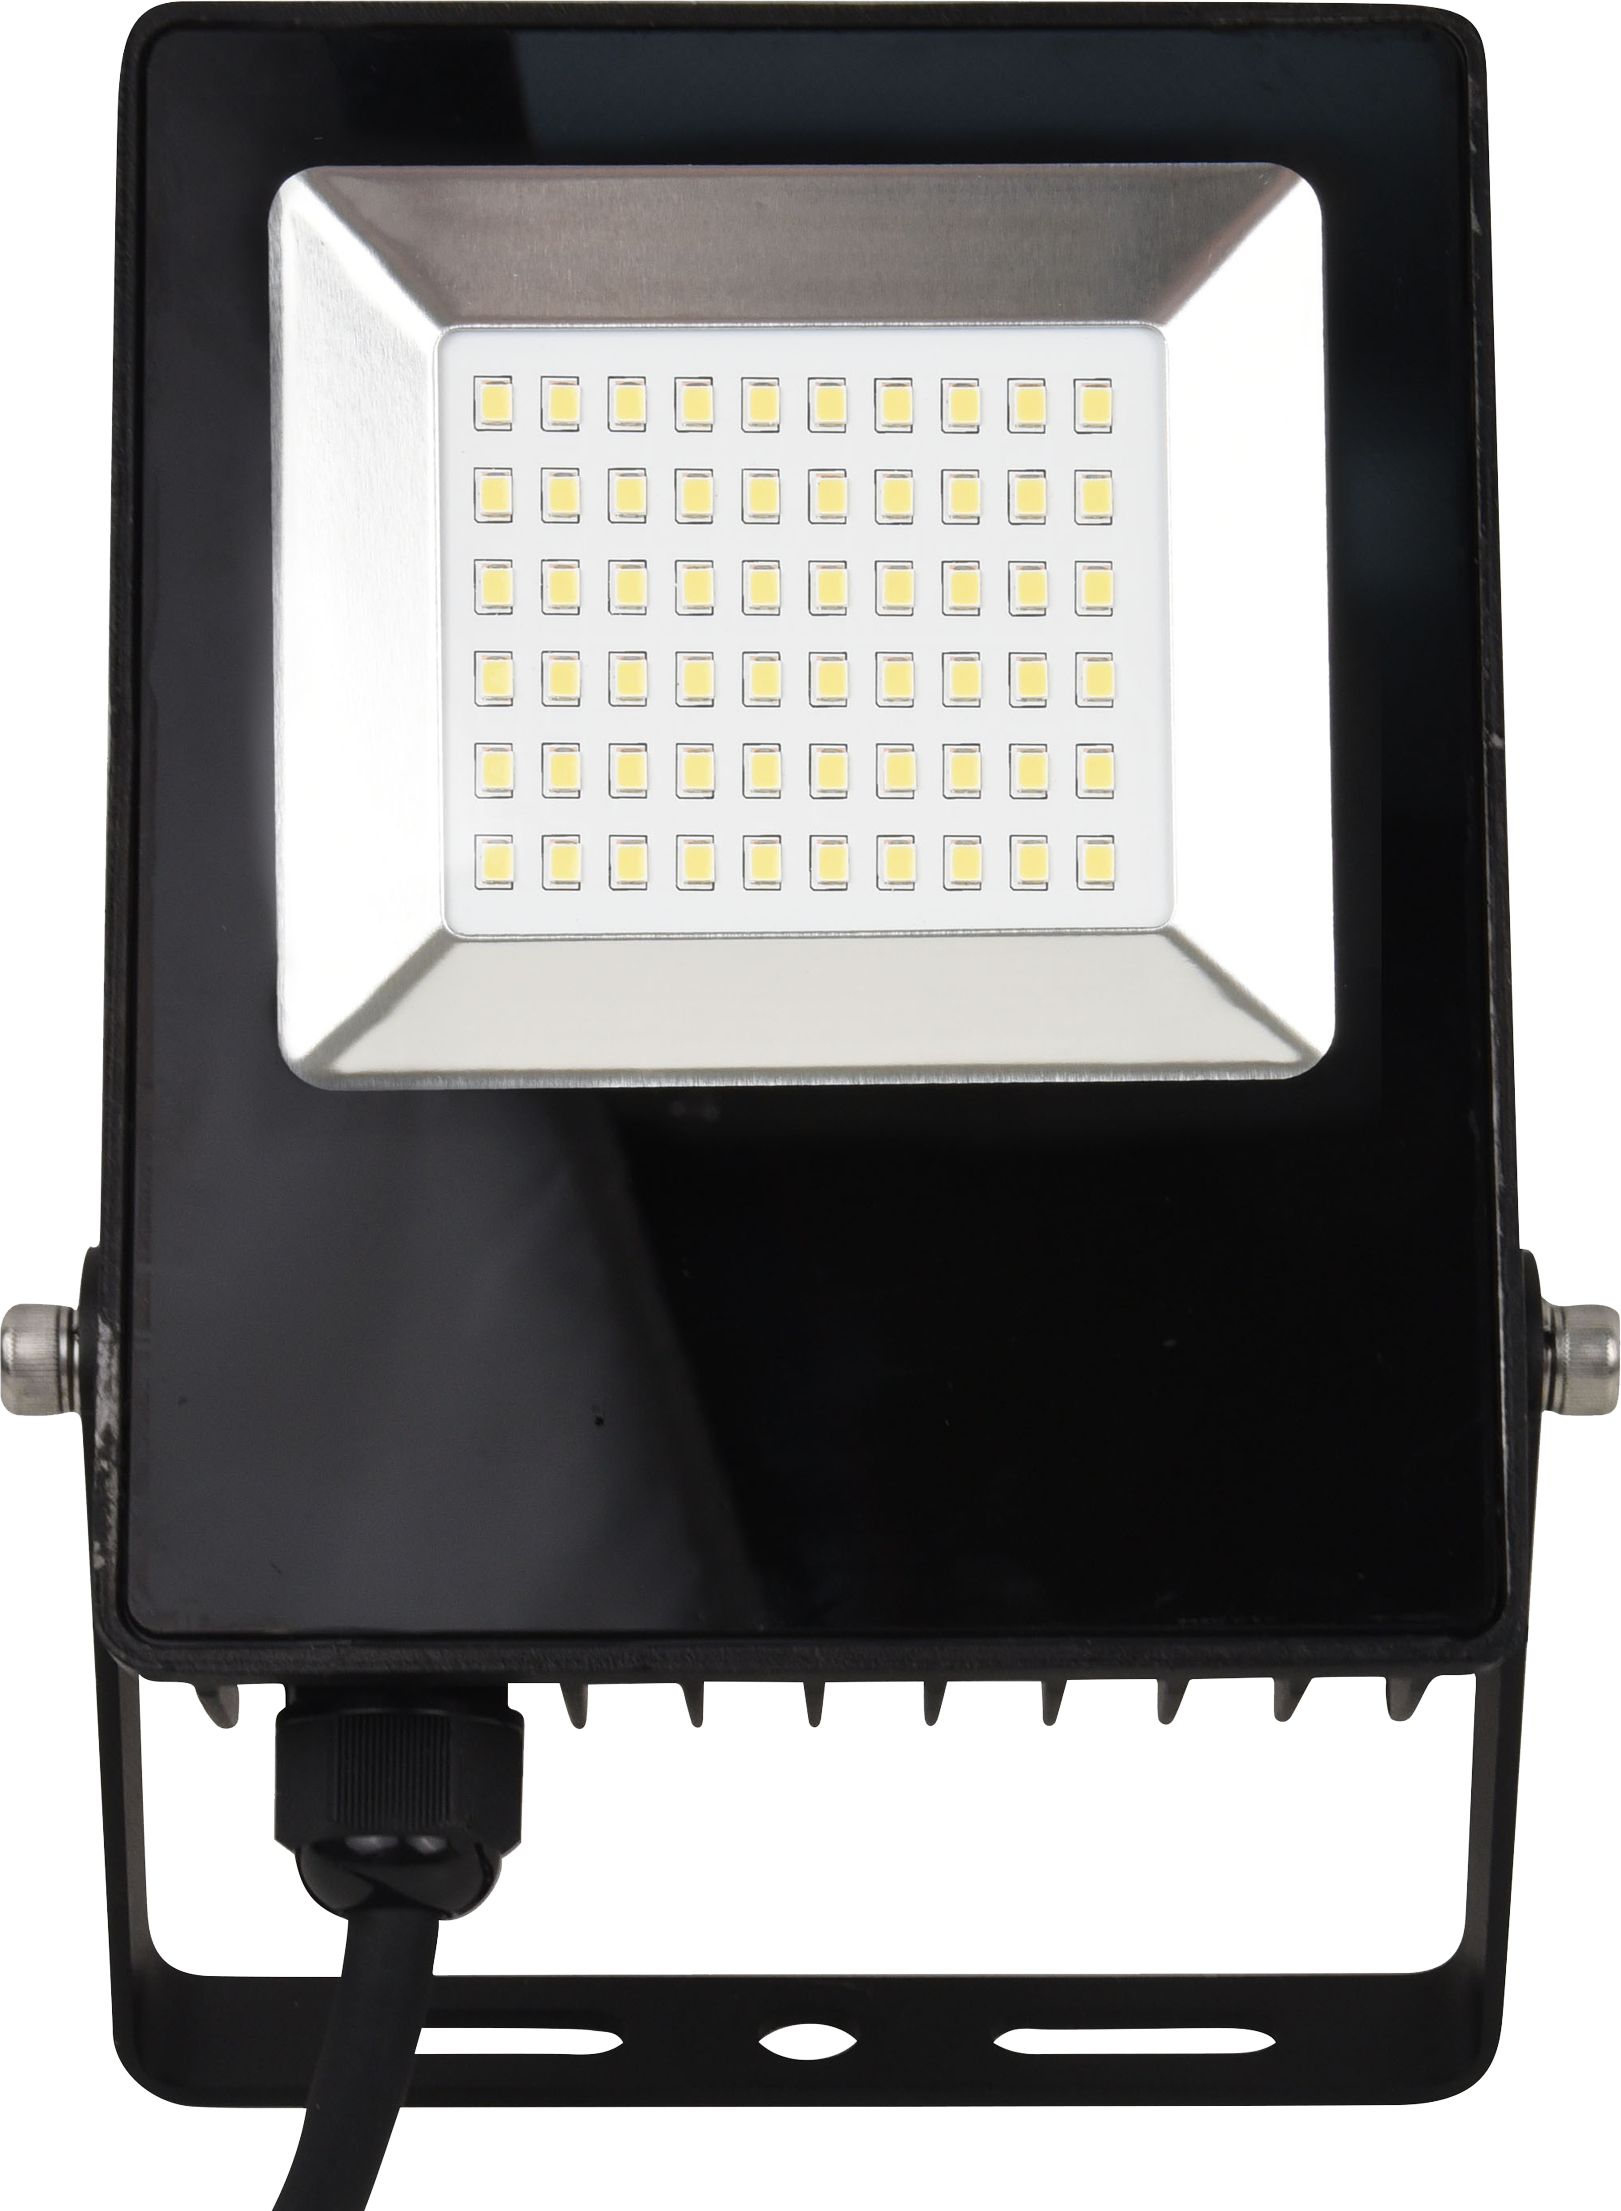 NaturaLED 27 Watt, 150-200 Watt Equivalent, 5000K LED Flood Light Fixture